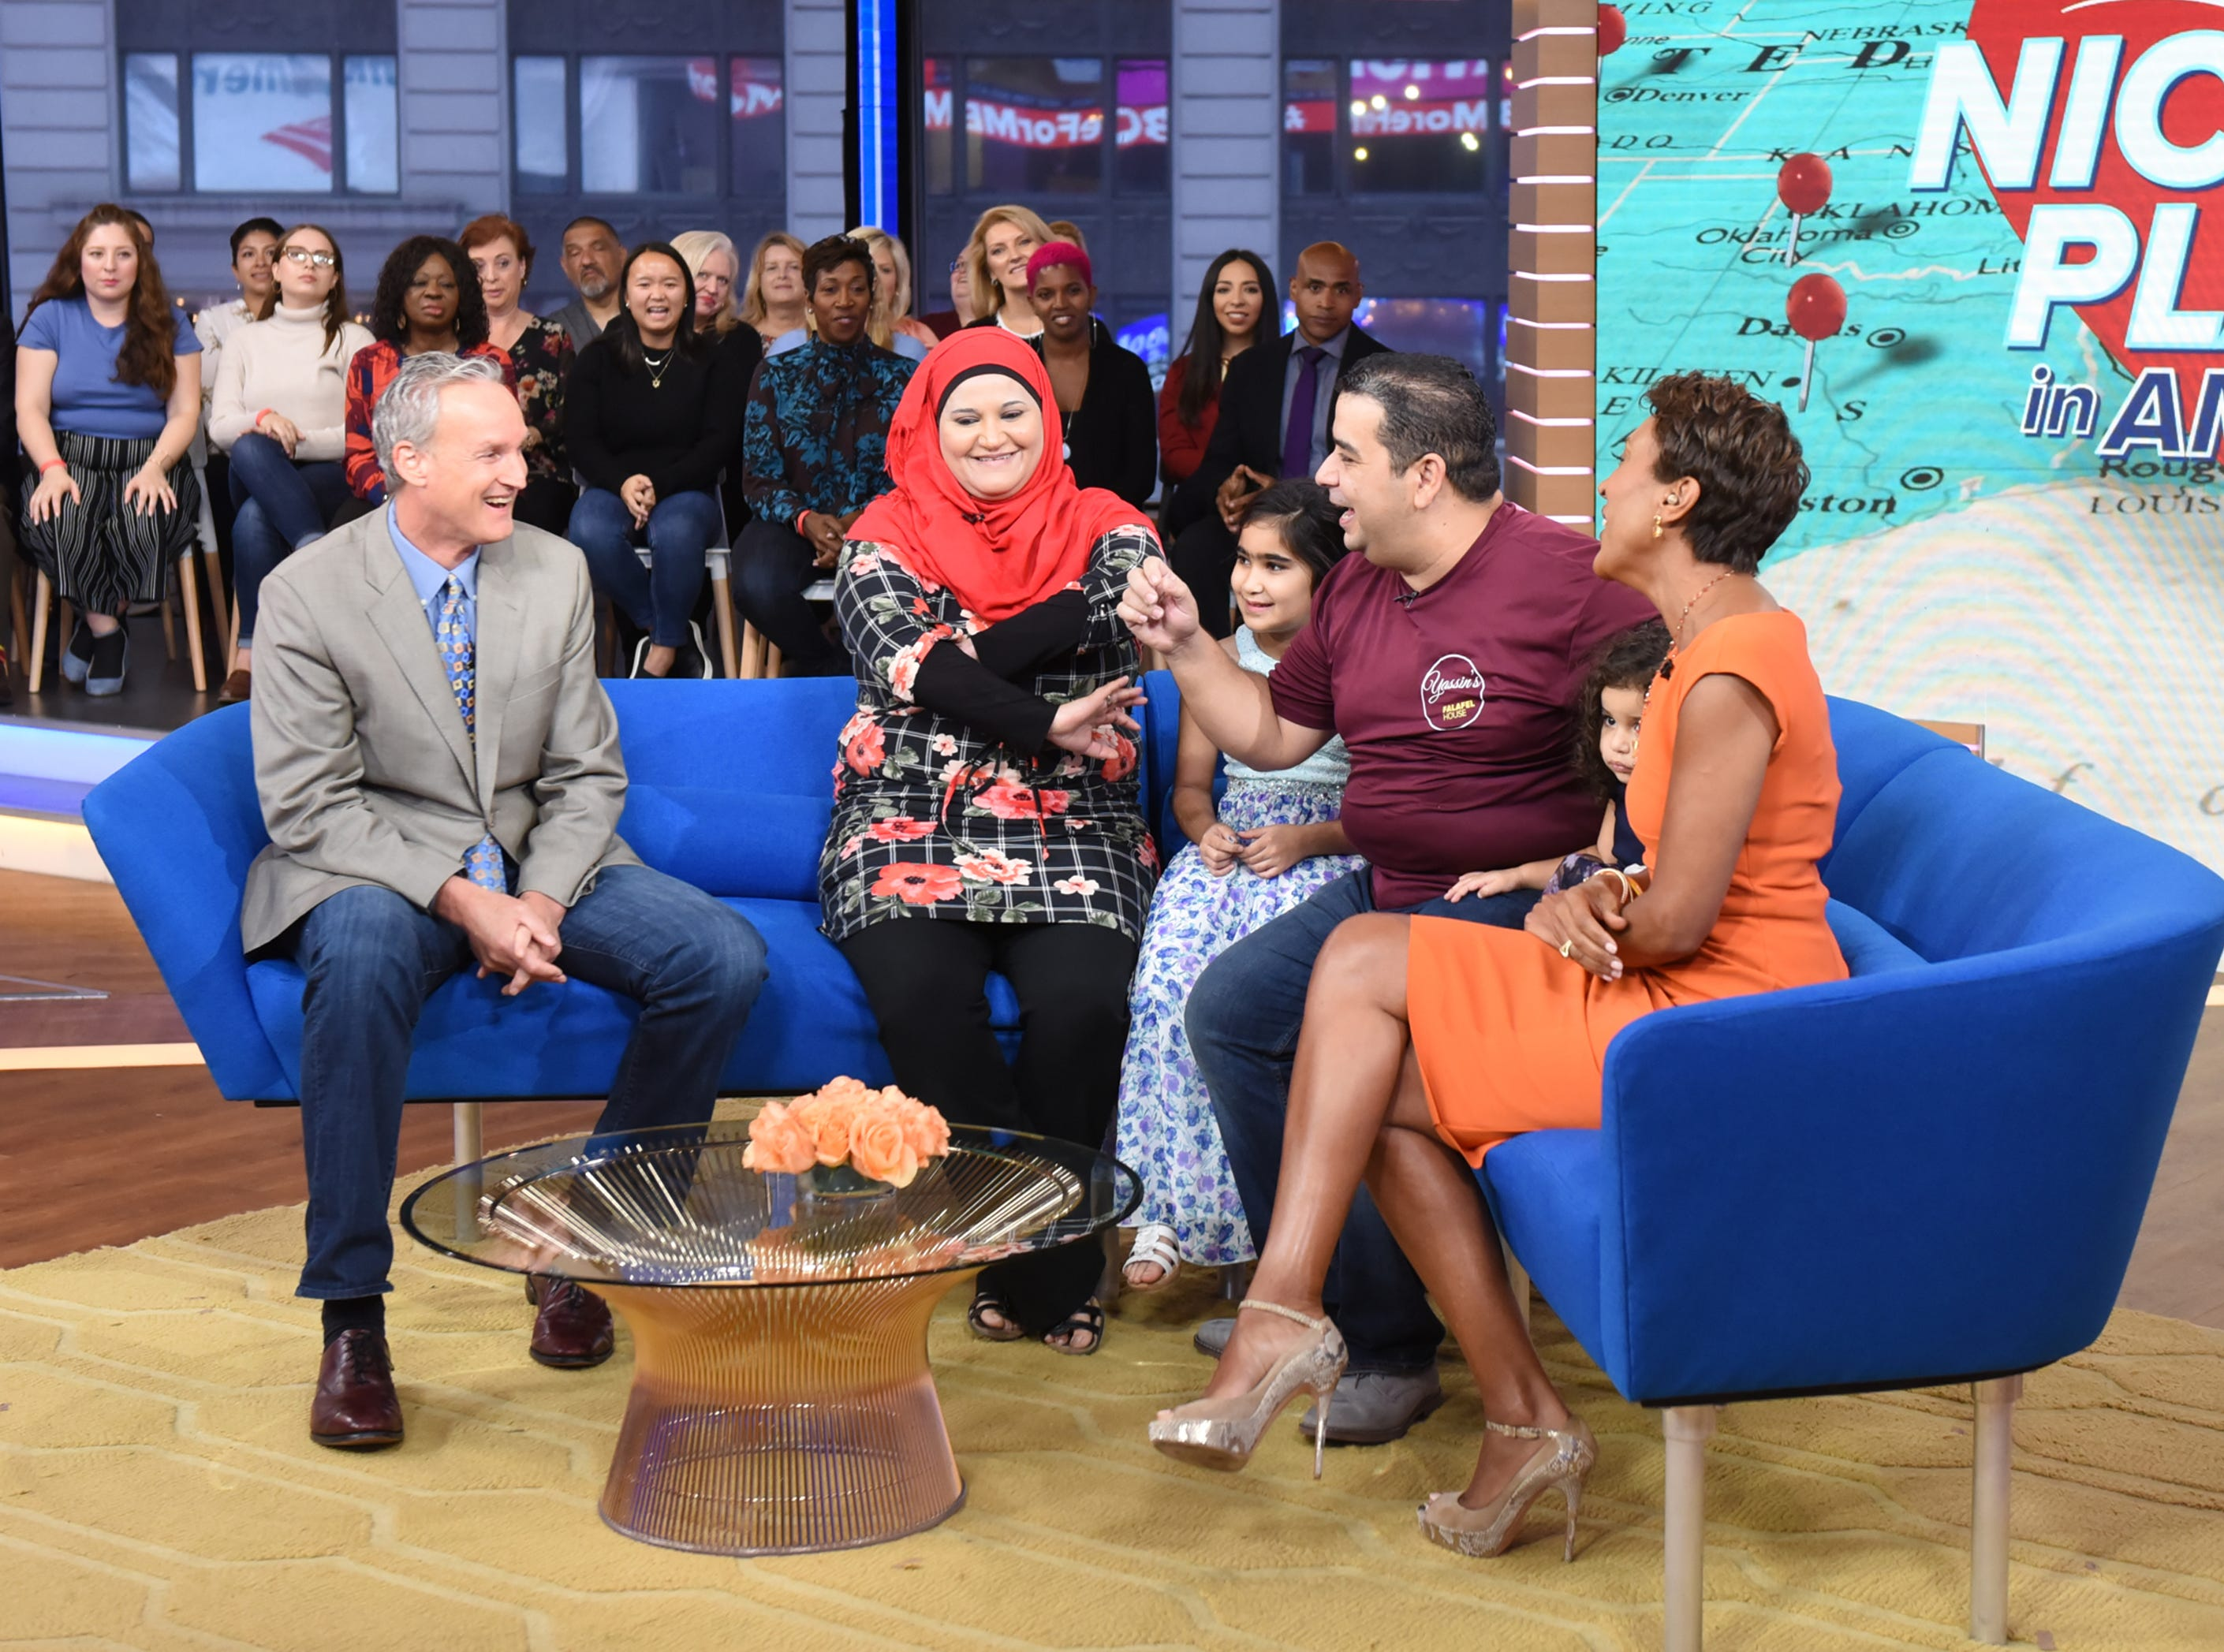 """Yassin Terou, owner of Yassin's Falafel House in Knoxville, Tenn., which was named the Nicest Place in America, is a guest on """"Good Morning America,"""" airing Thursday, October 11, 2018 on ABC. Pictured are Bruce Kelley (left), Yassin Terou and his family, and GMA host Robin Roberts."""